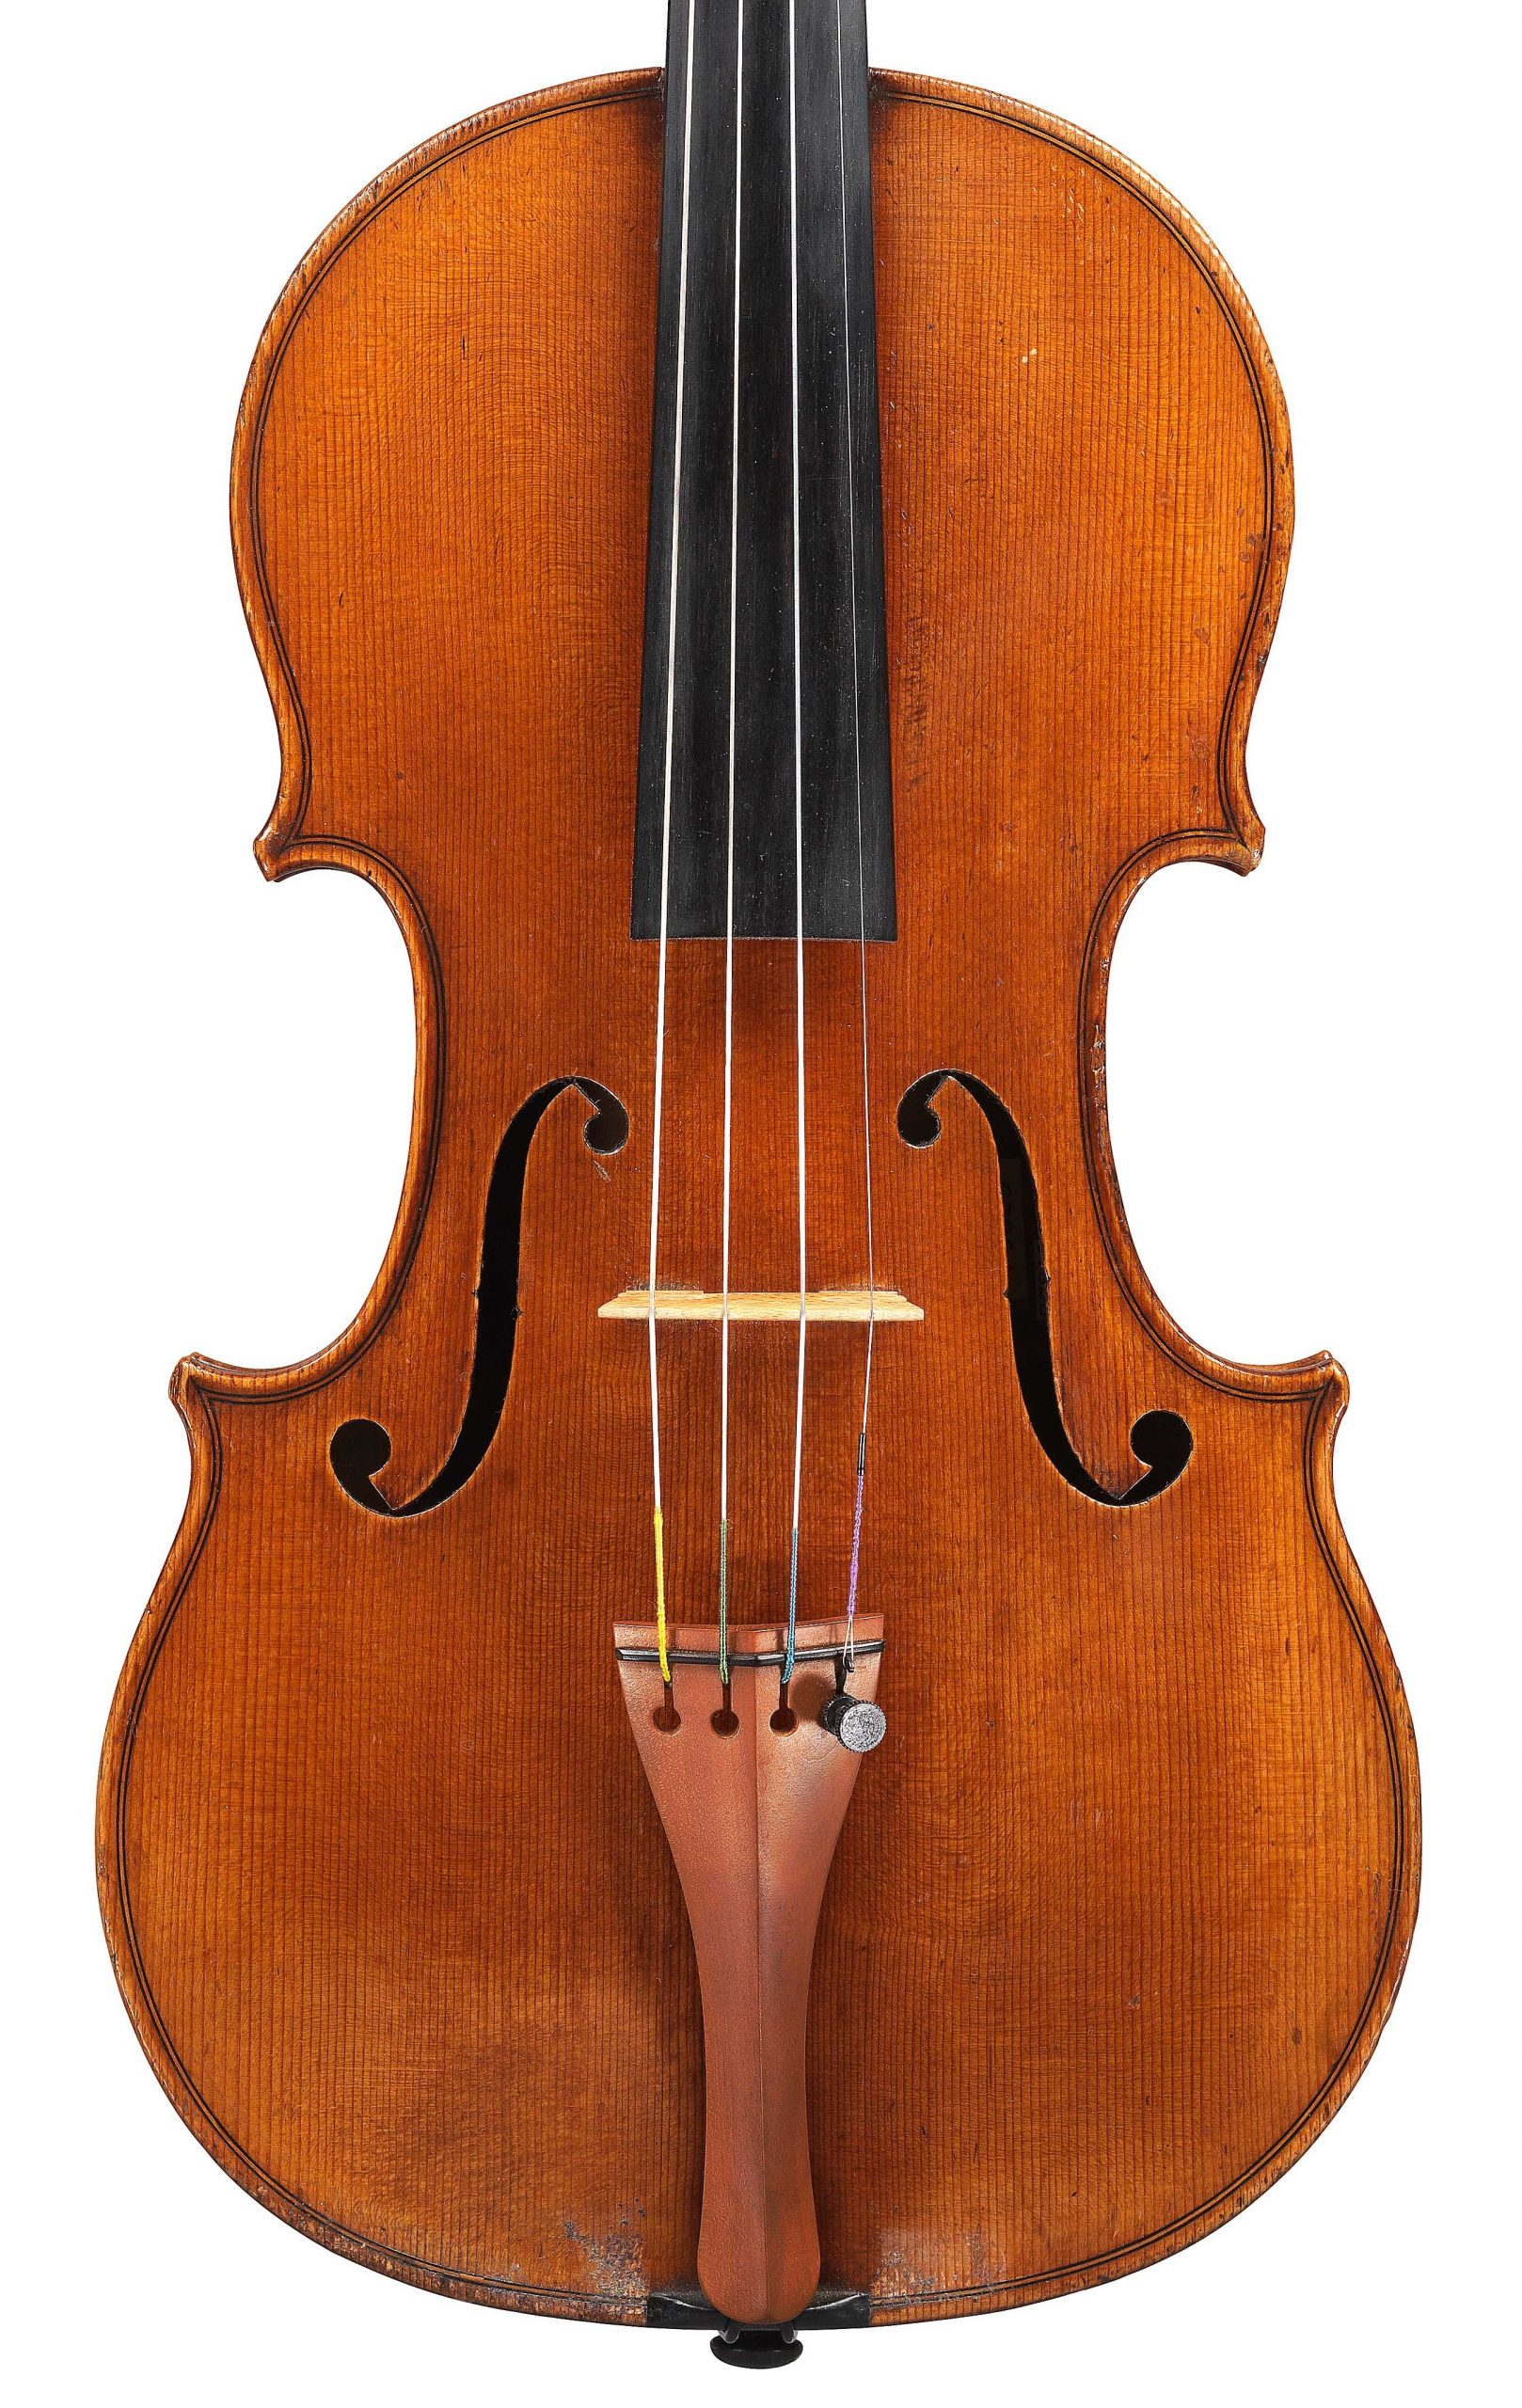 Front of violin by JB Vuillaume, ex-Posner, dated 1871, exhibited by Ingles & Hayday at Sotheby's in 2012